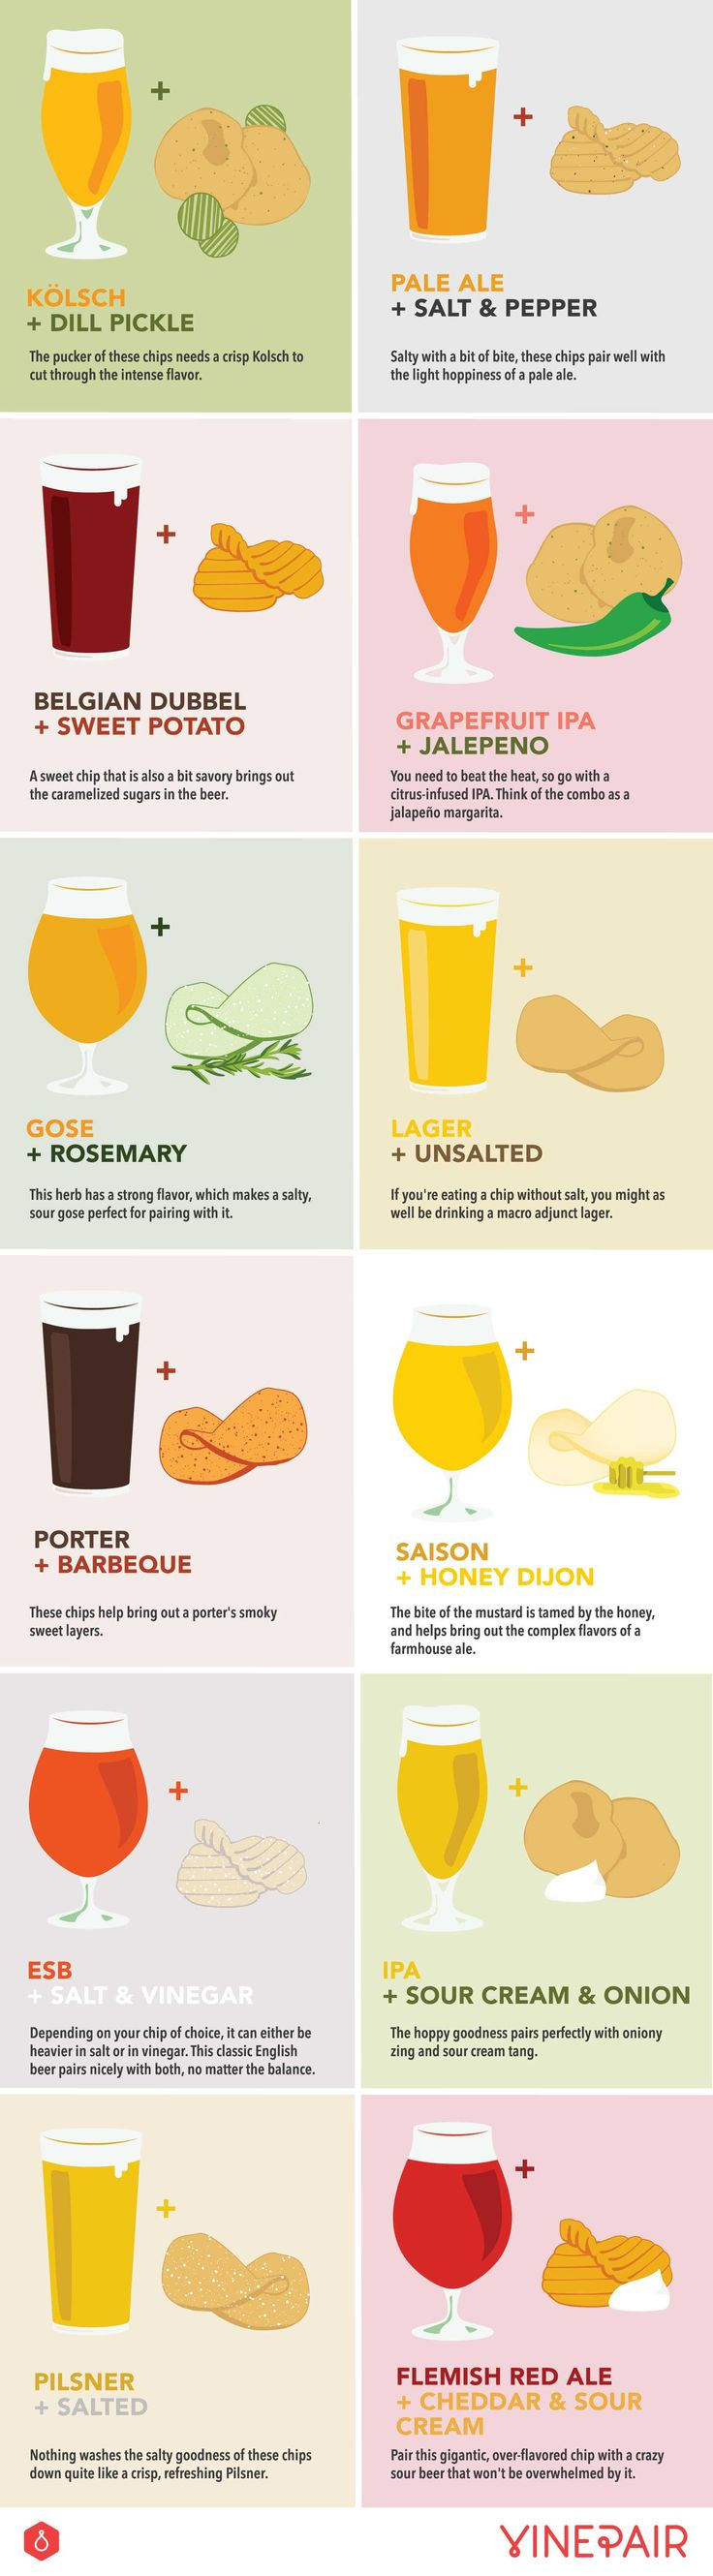 Beer Pairing For Every Potato Chip Flavor [Infographic]                                                                                                                                                                                 More  #craftbeer #beer